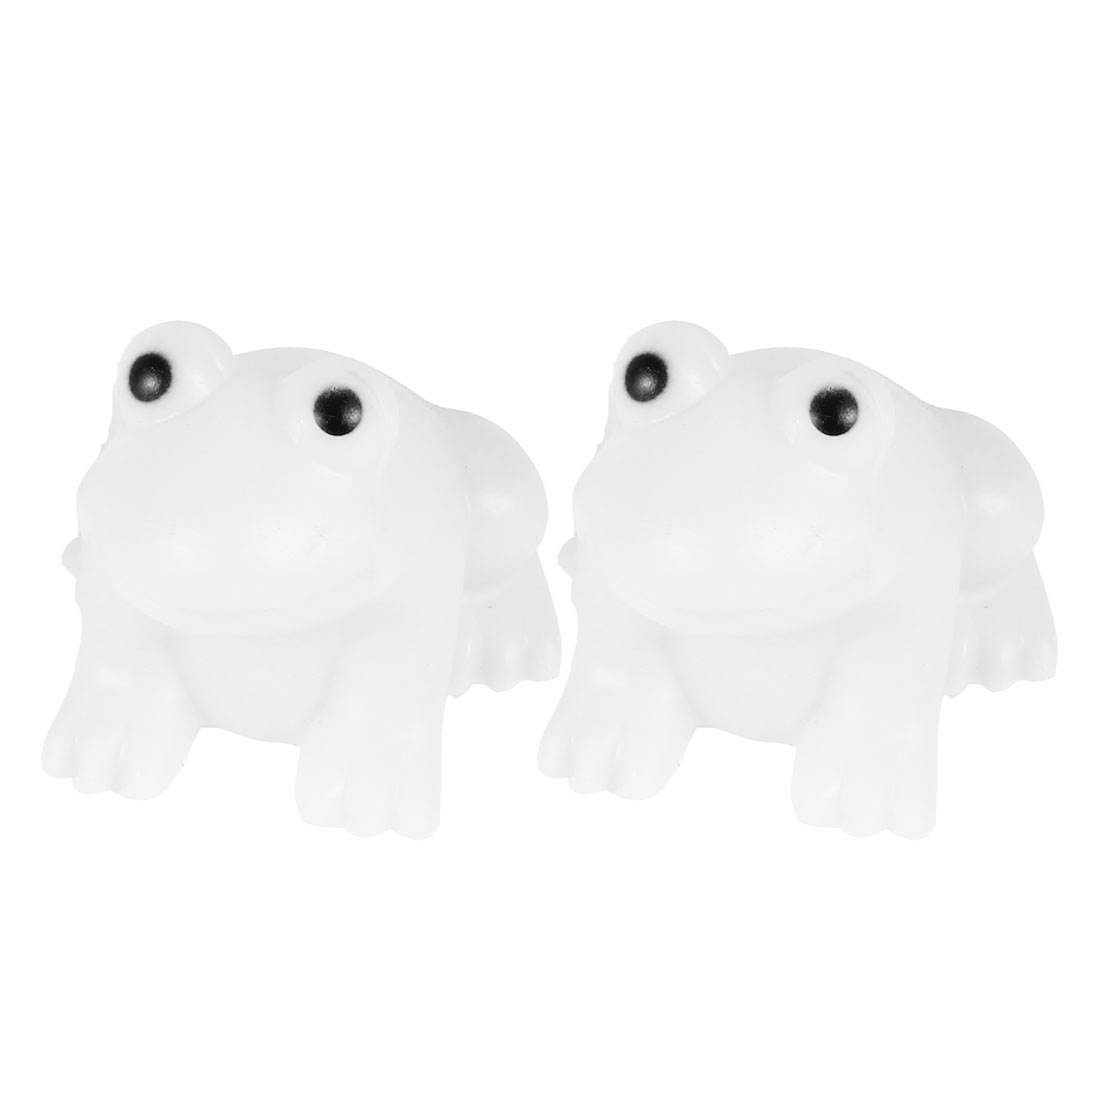 2 Pcs Batteries Powered Frog Shaped Colorful LED Night Light Lamp